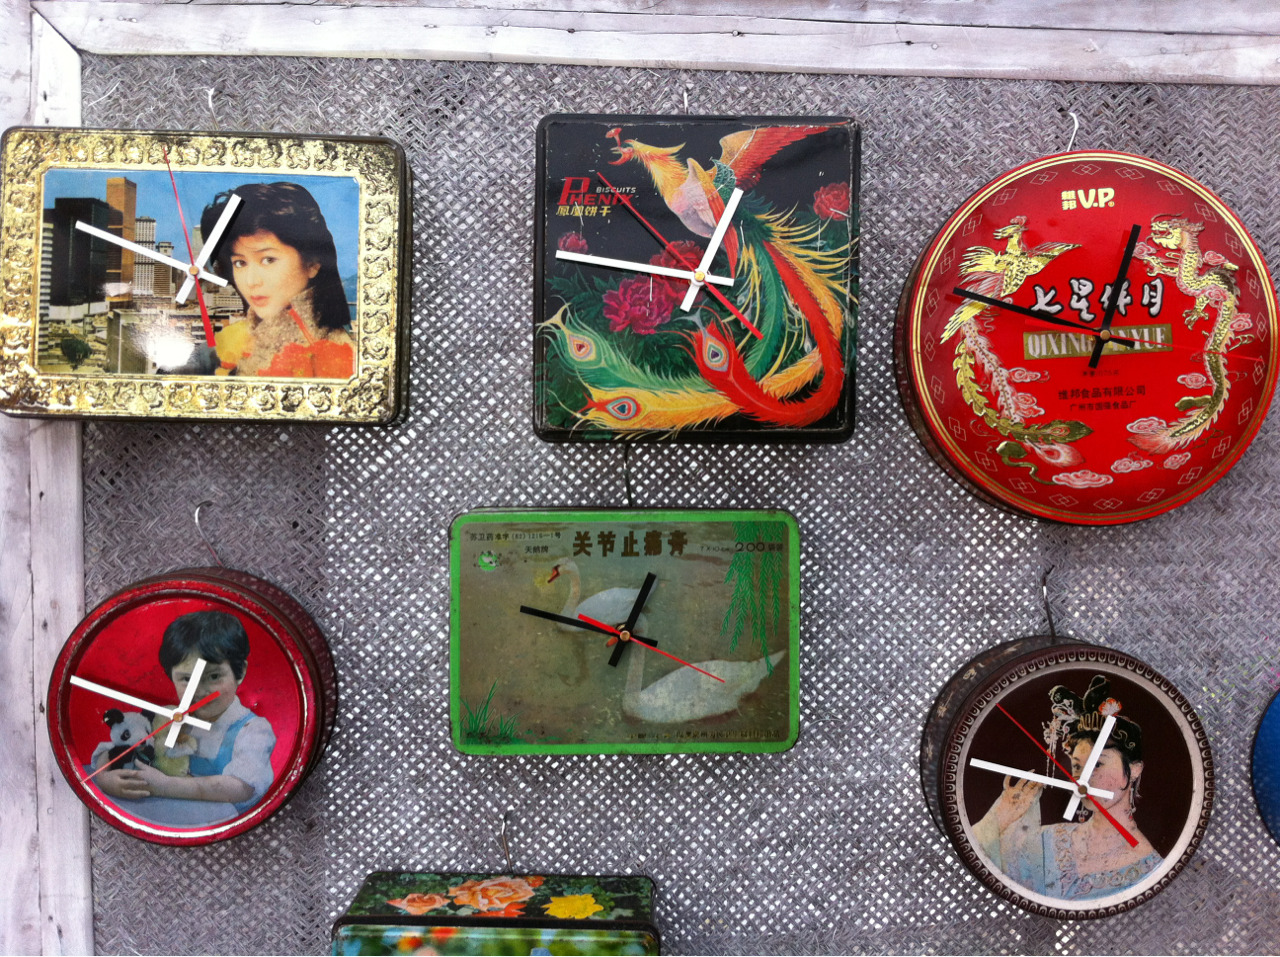 Clocks made from vintage Chinese tins by an artists in Shanghai who also turns suitcases into totally cool iPod docks with speakers. We bought the one top middle. Jake's theory is that if we have more clocks around the apartment I'll be on time…..let's see what happens.  Check www.jonasdesigns.net